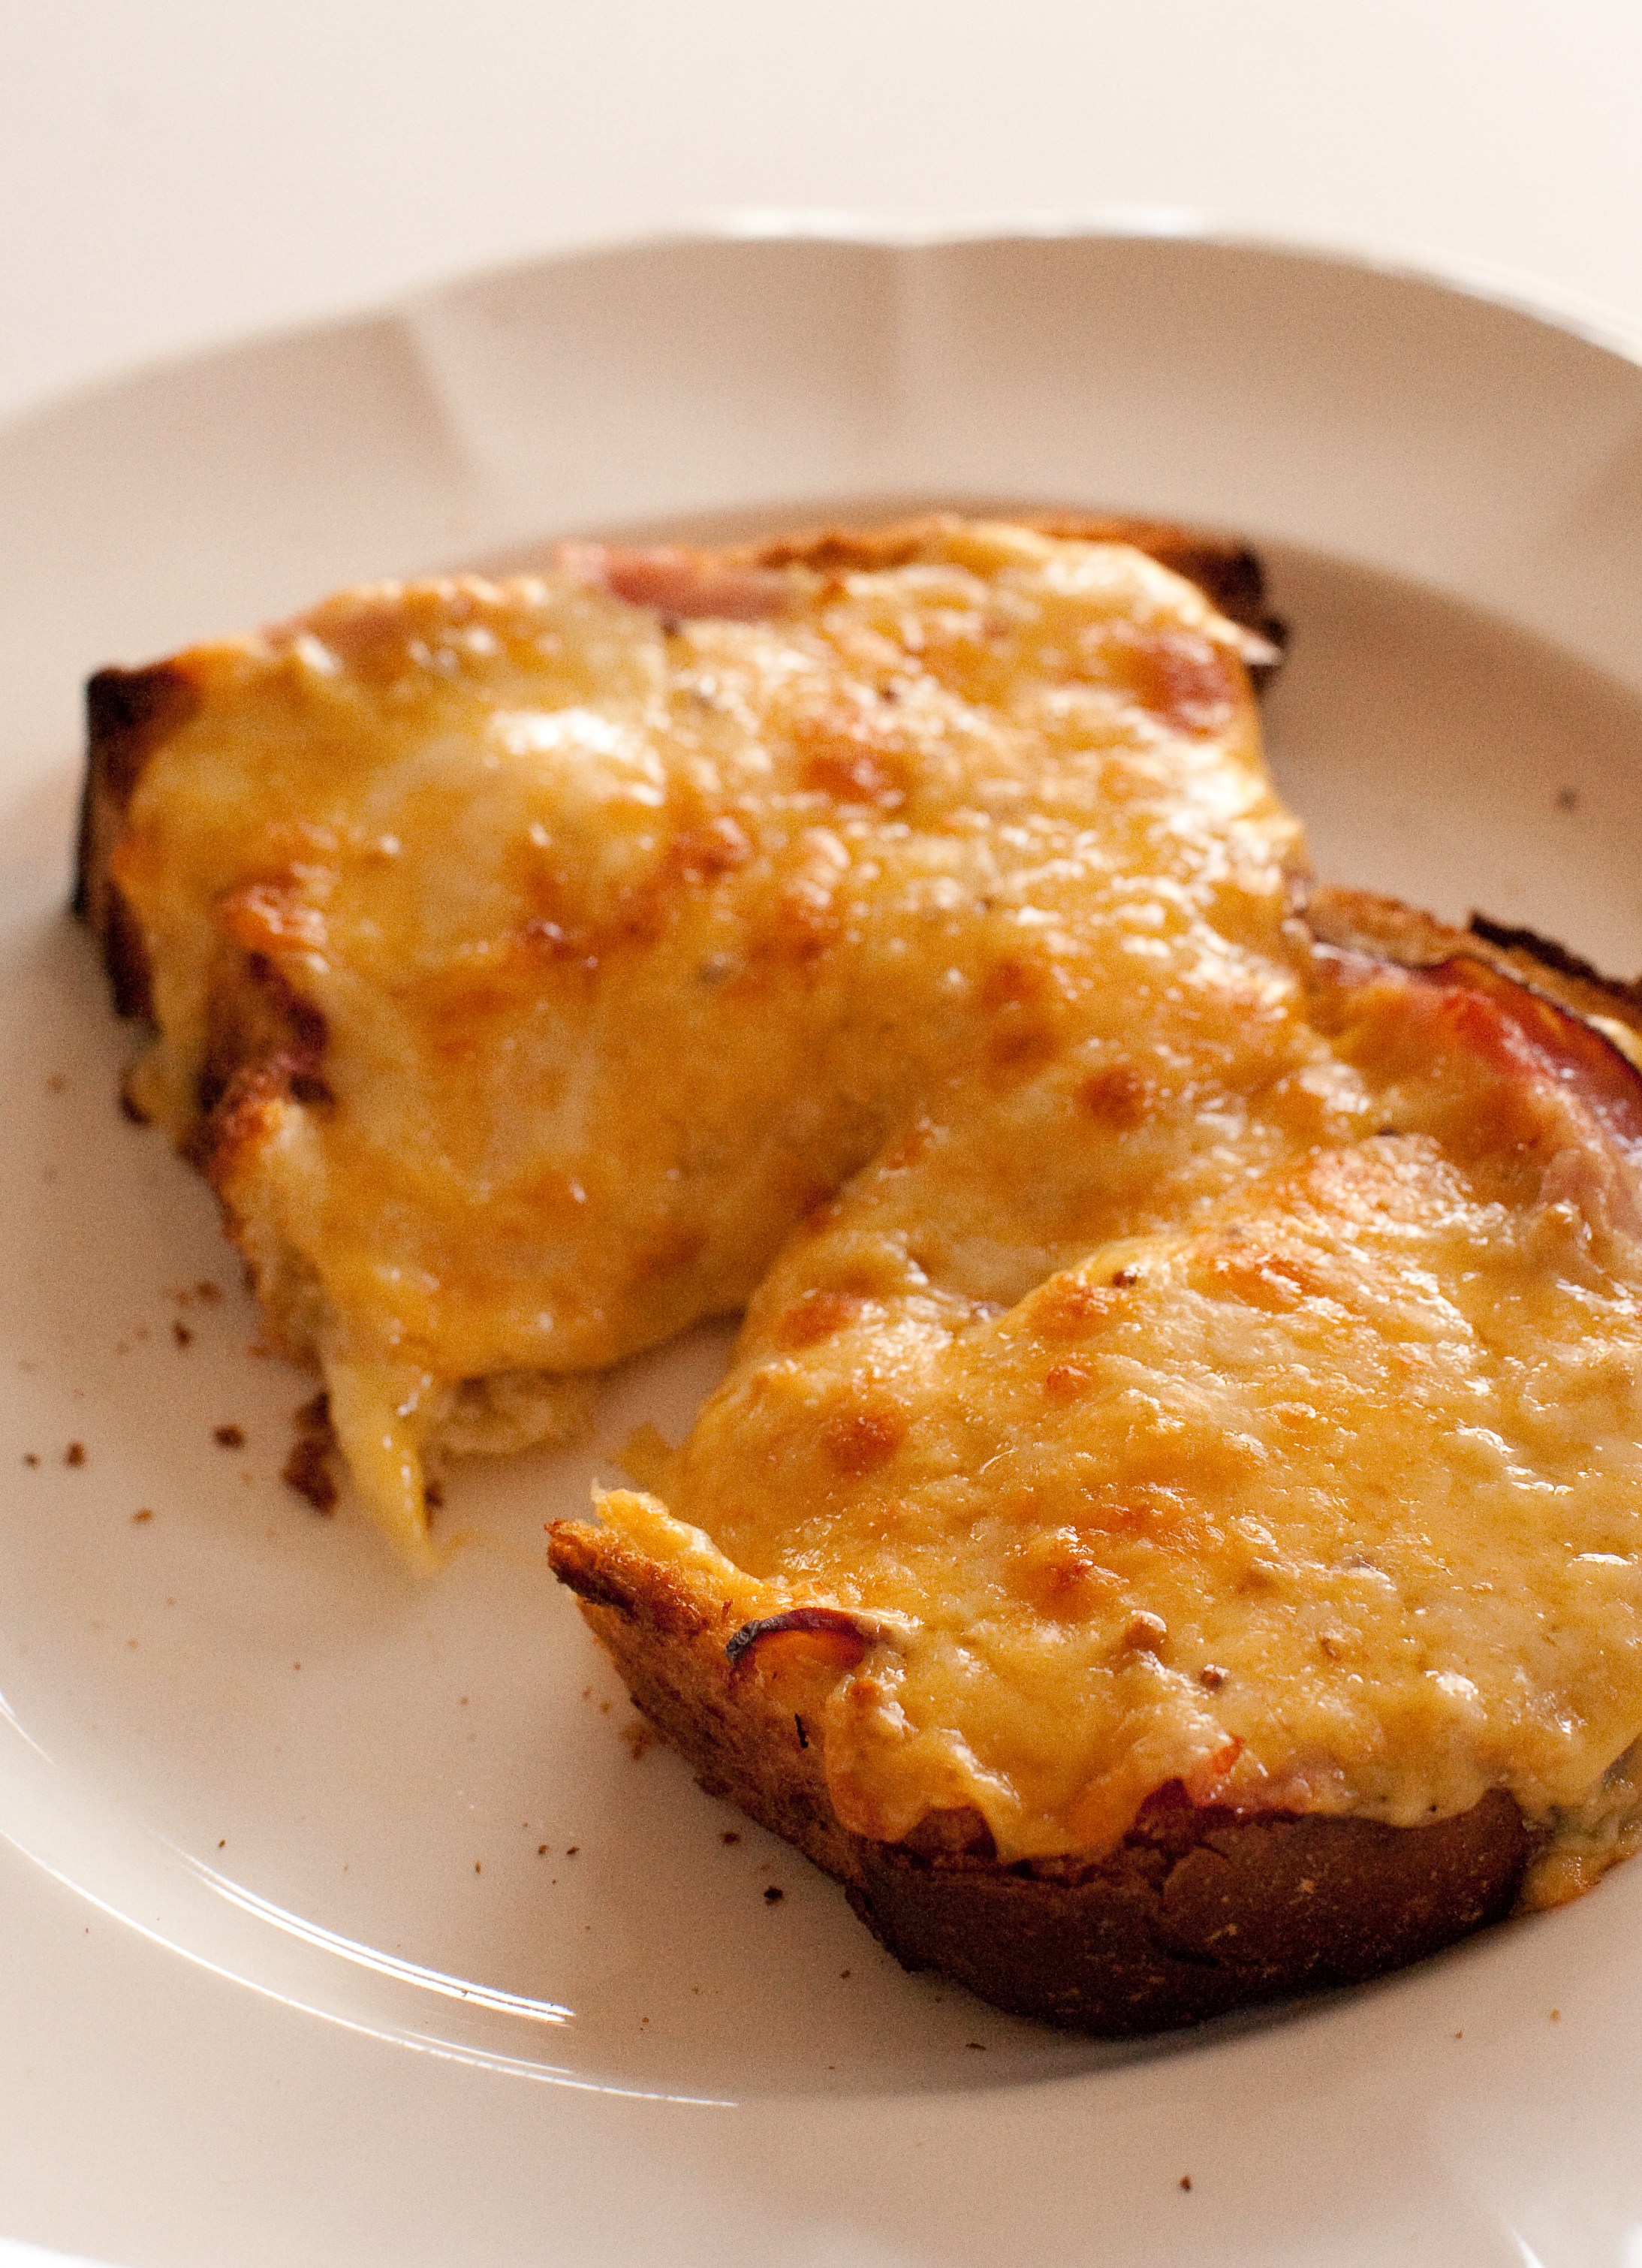 Jose Pizarro's Fillet Steak On Toast With Onions And Melted Cheese ...